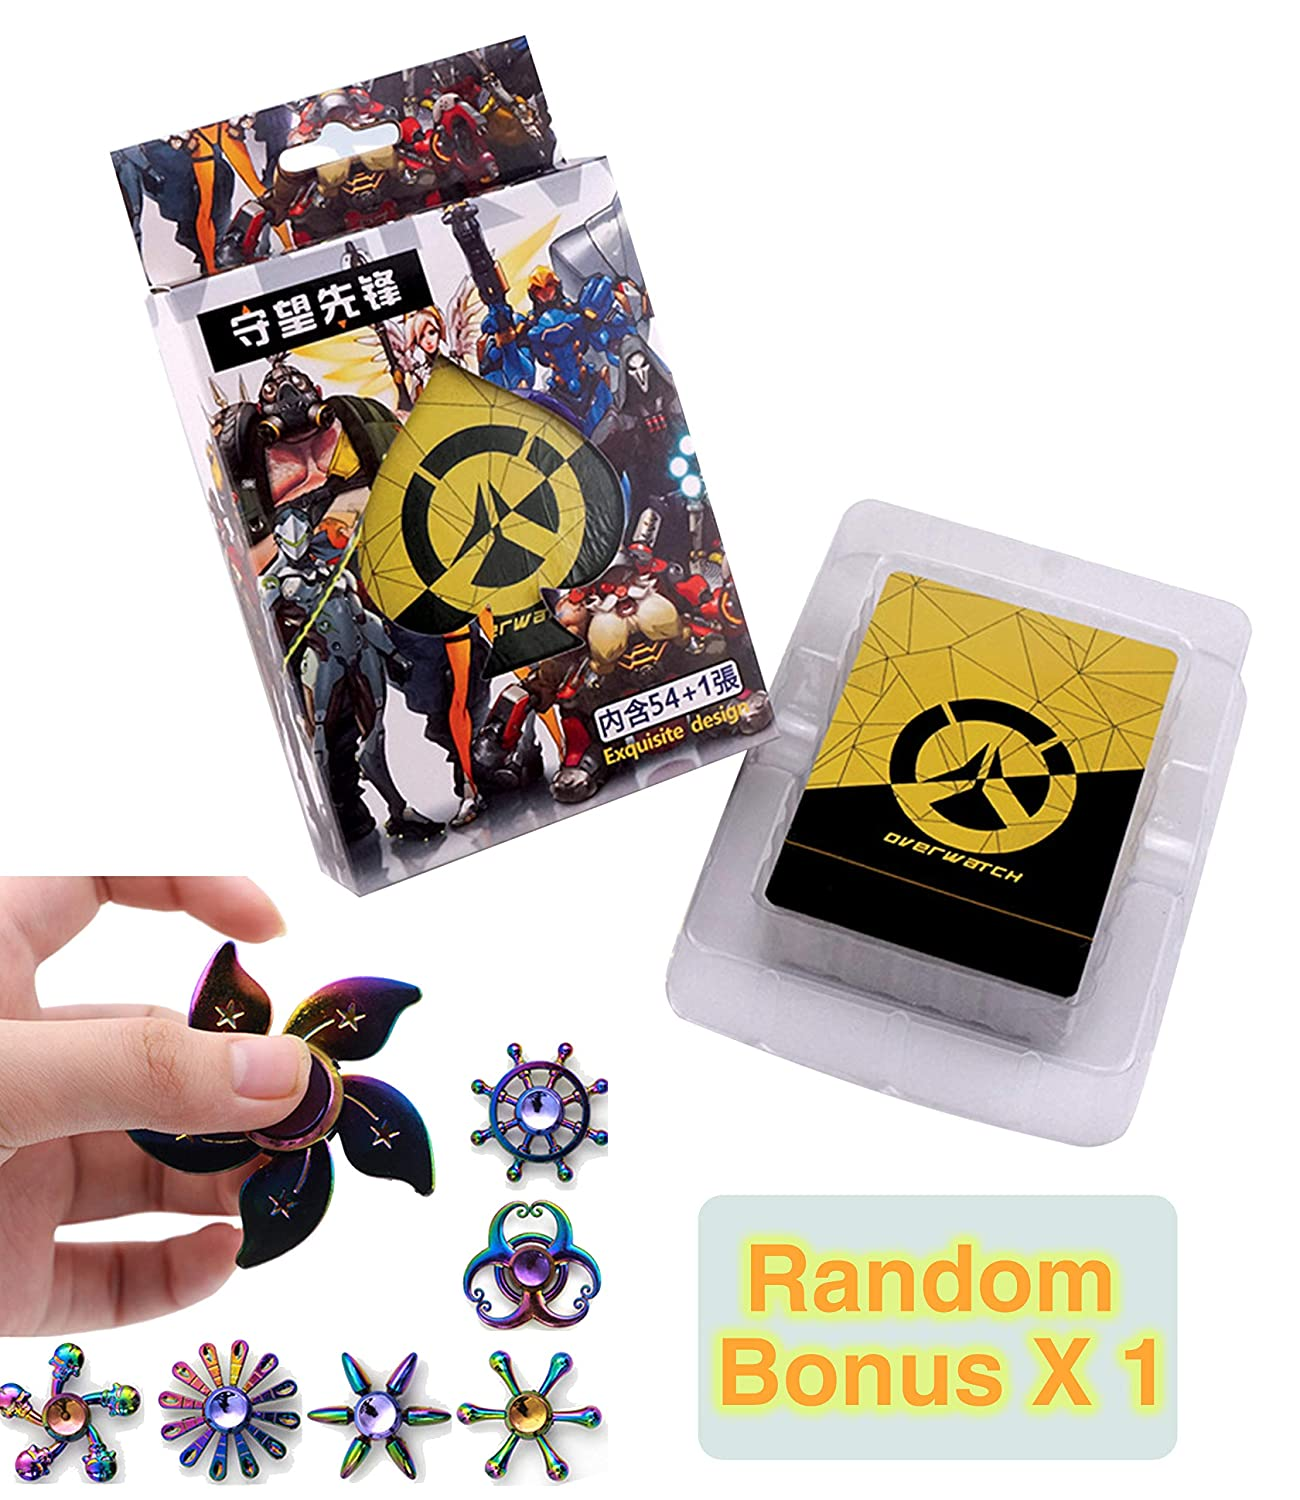 E-Hunter Deck of Game Anime Fans Poker Cards with Bonus Relaxation Pressure Relief Toy